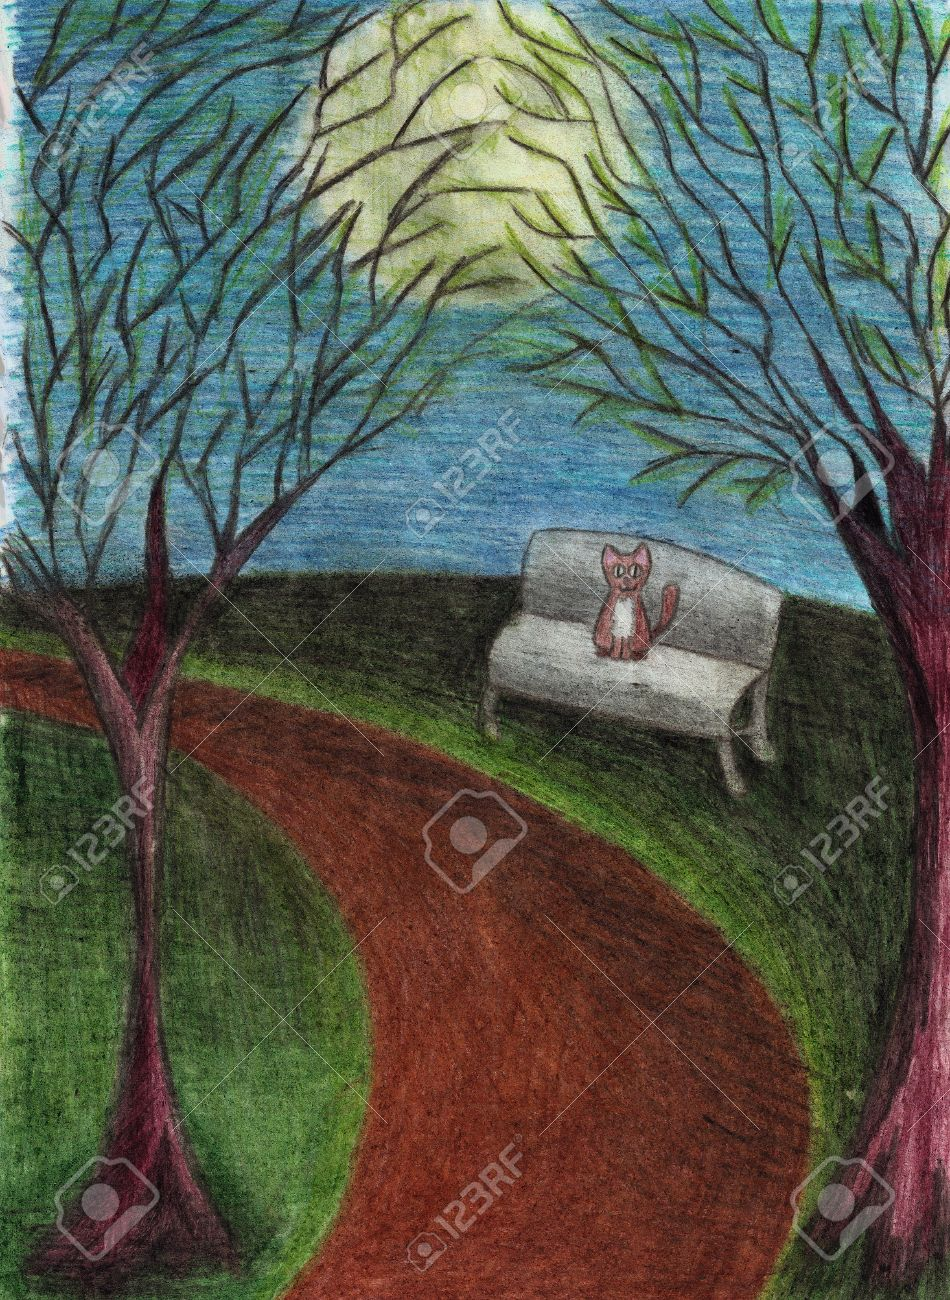 Cat in night park, landscape with trees, bench, path, full moon, drawn with colored pencils on paper - 30679588